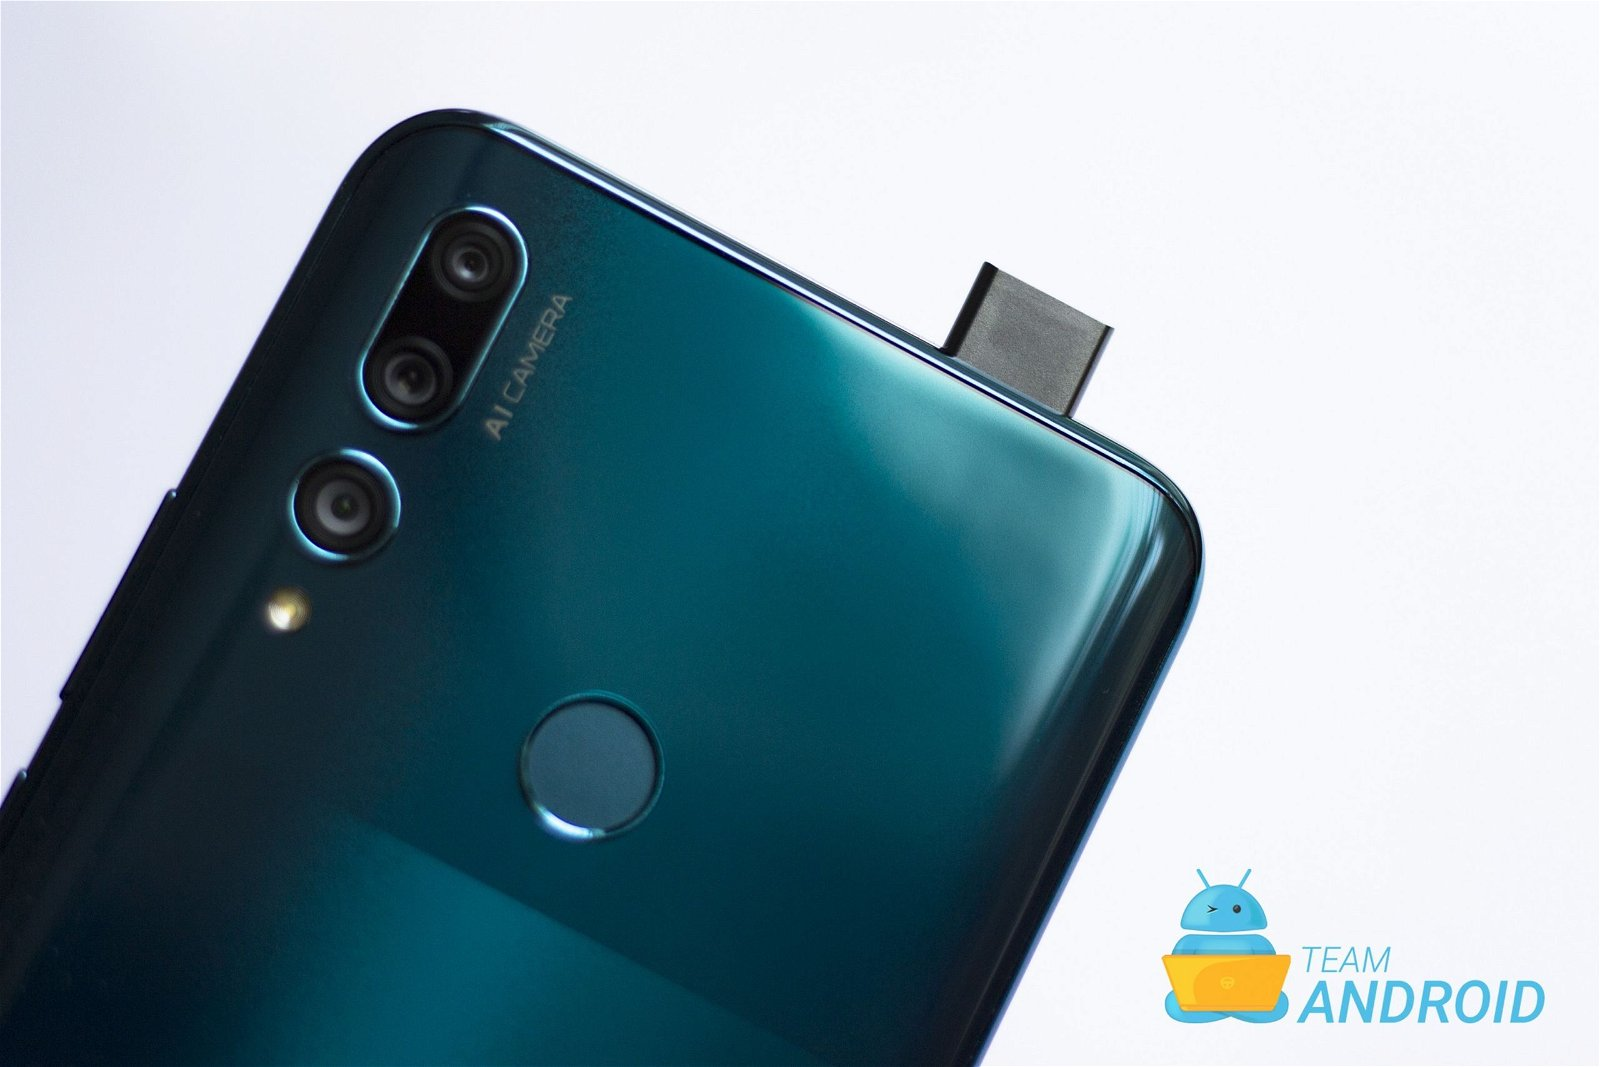 Huawei Y9 Prime 2019 Review: Full Screen Experience 62